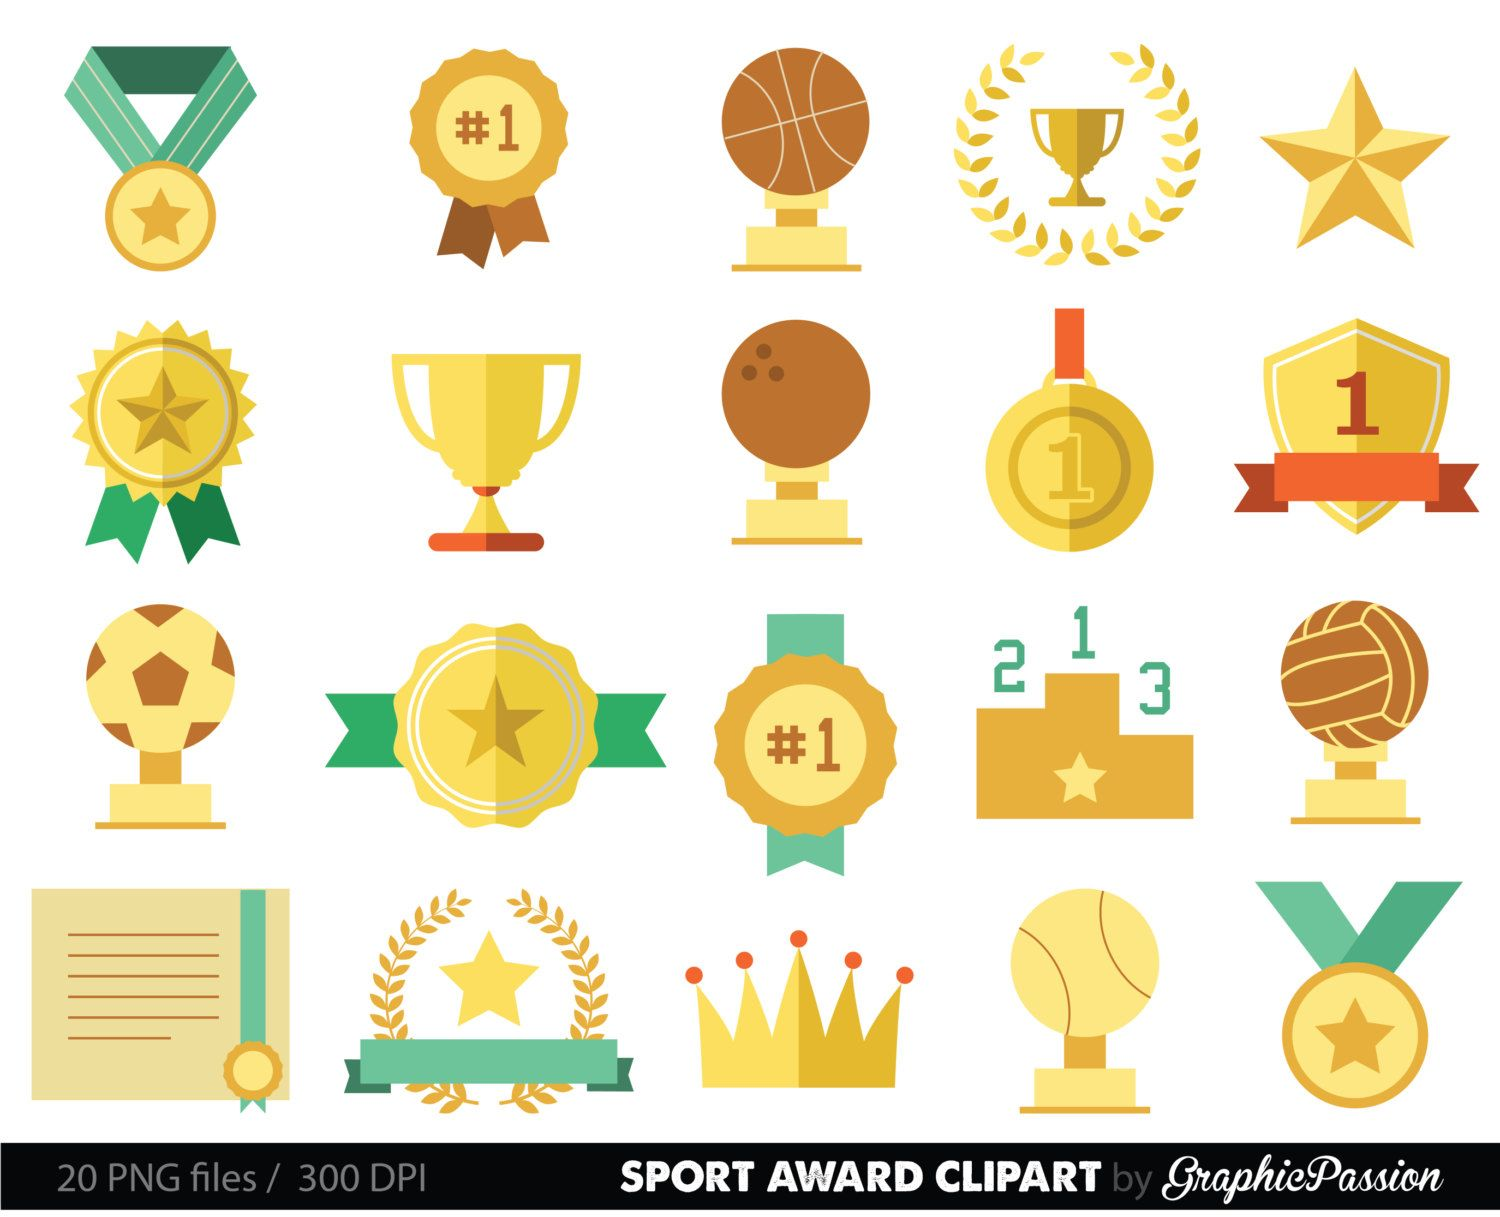 Sports Clipart Racing Prizes Flags Digital Paper Stars Medals Trophy Podium Printable Stickers 1st Prize Art By GraphicPassion On Etsy